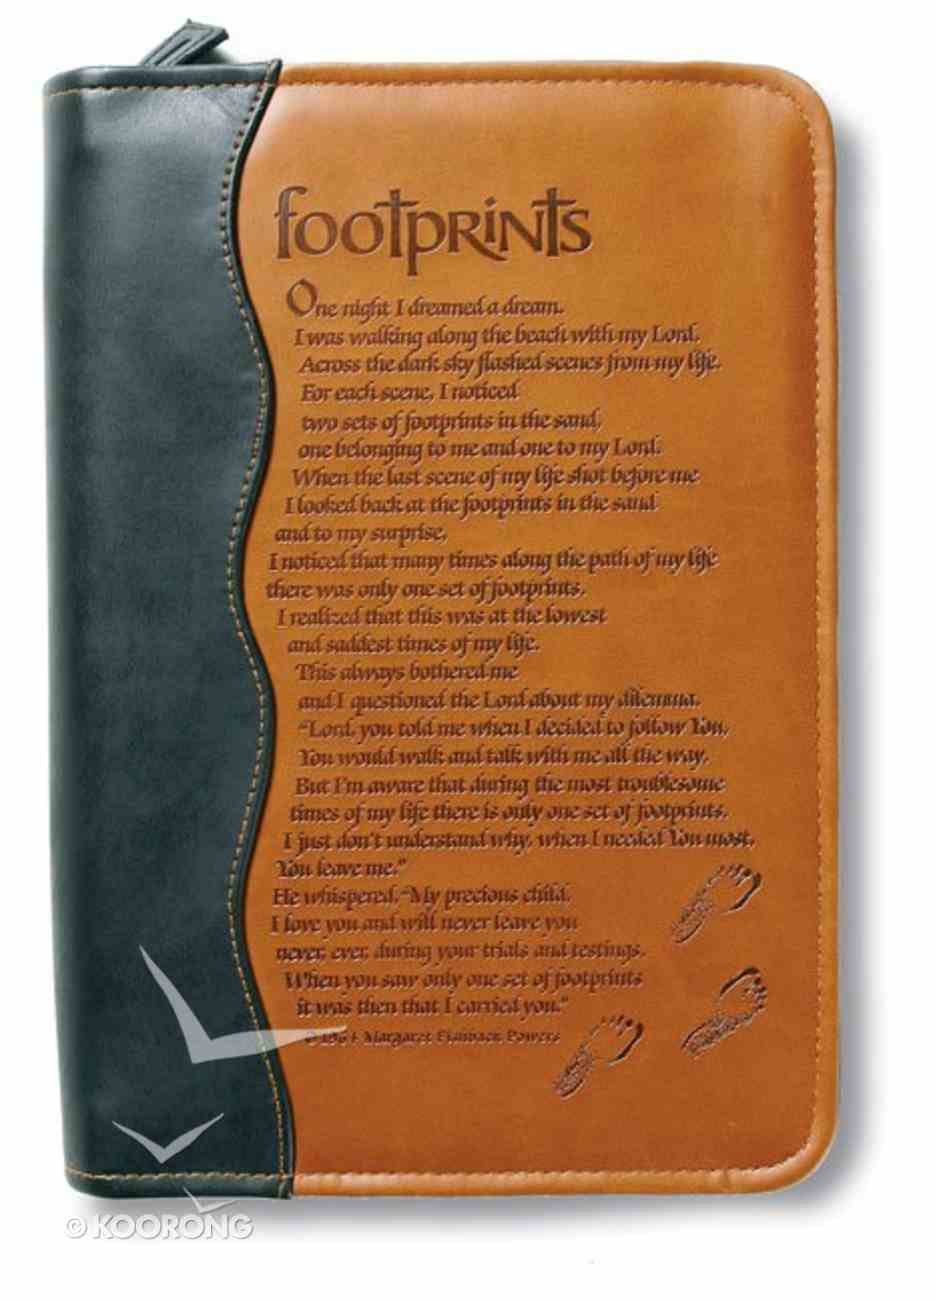 Bible Cover Footprints Duo-Tone Black/Tan Extra Large Bible Cover